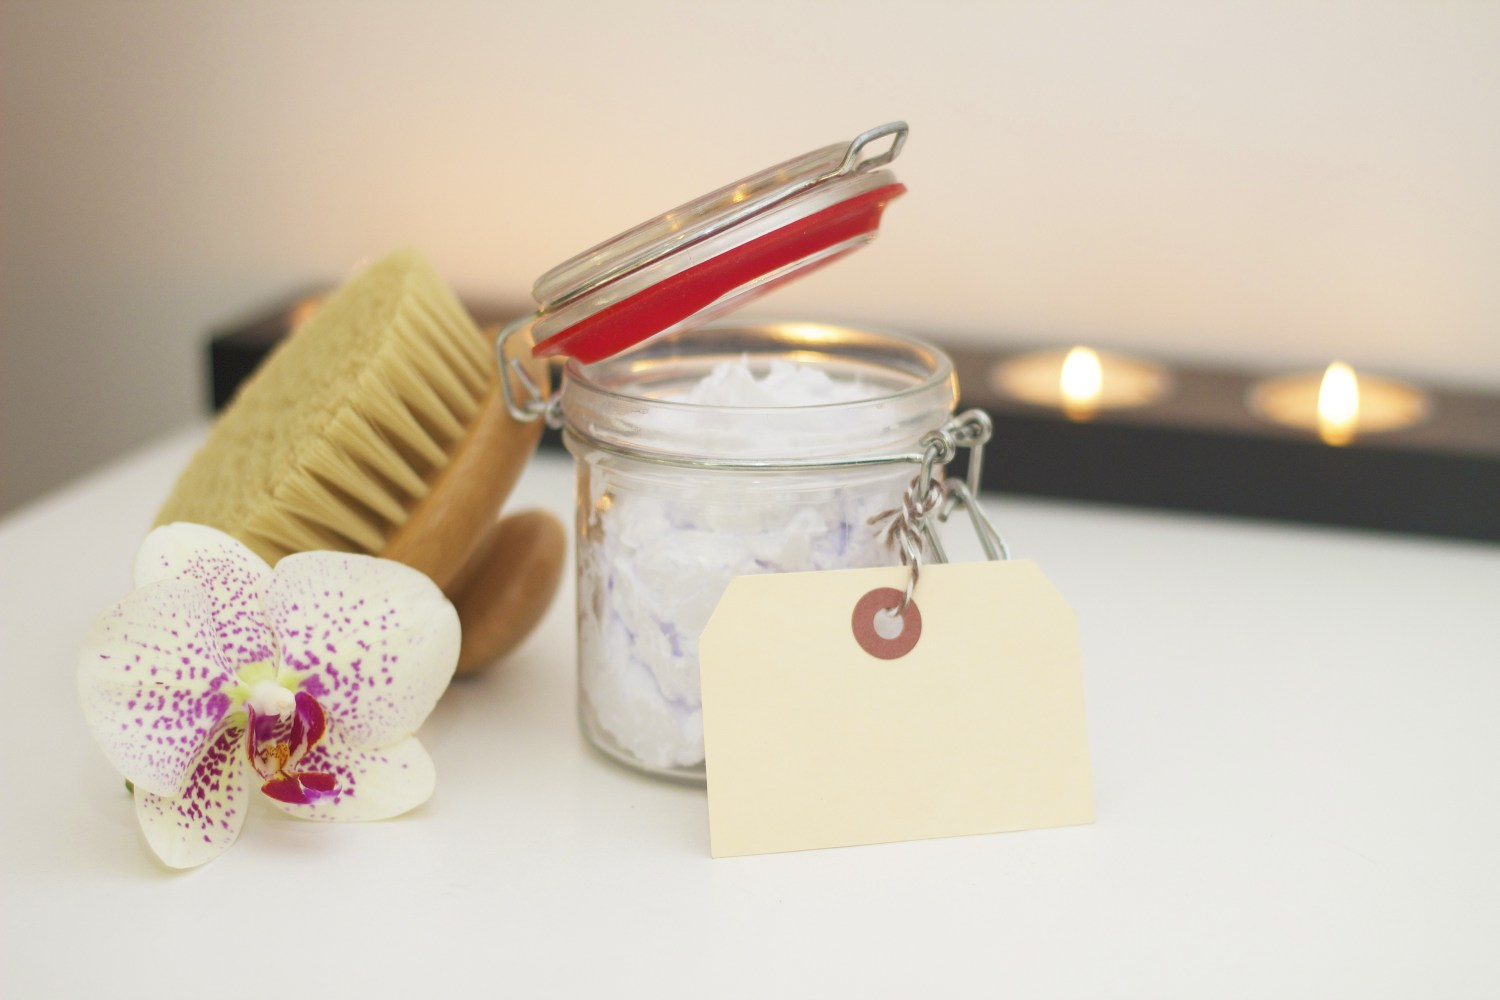 Self-care With Time to Spare: 10 Ways to Pamper Yourself in 20 Minutes